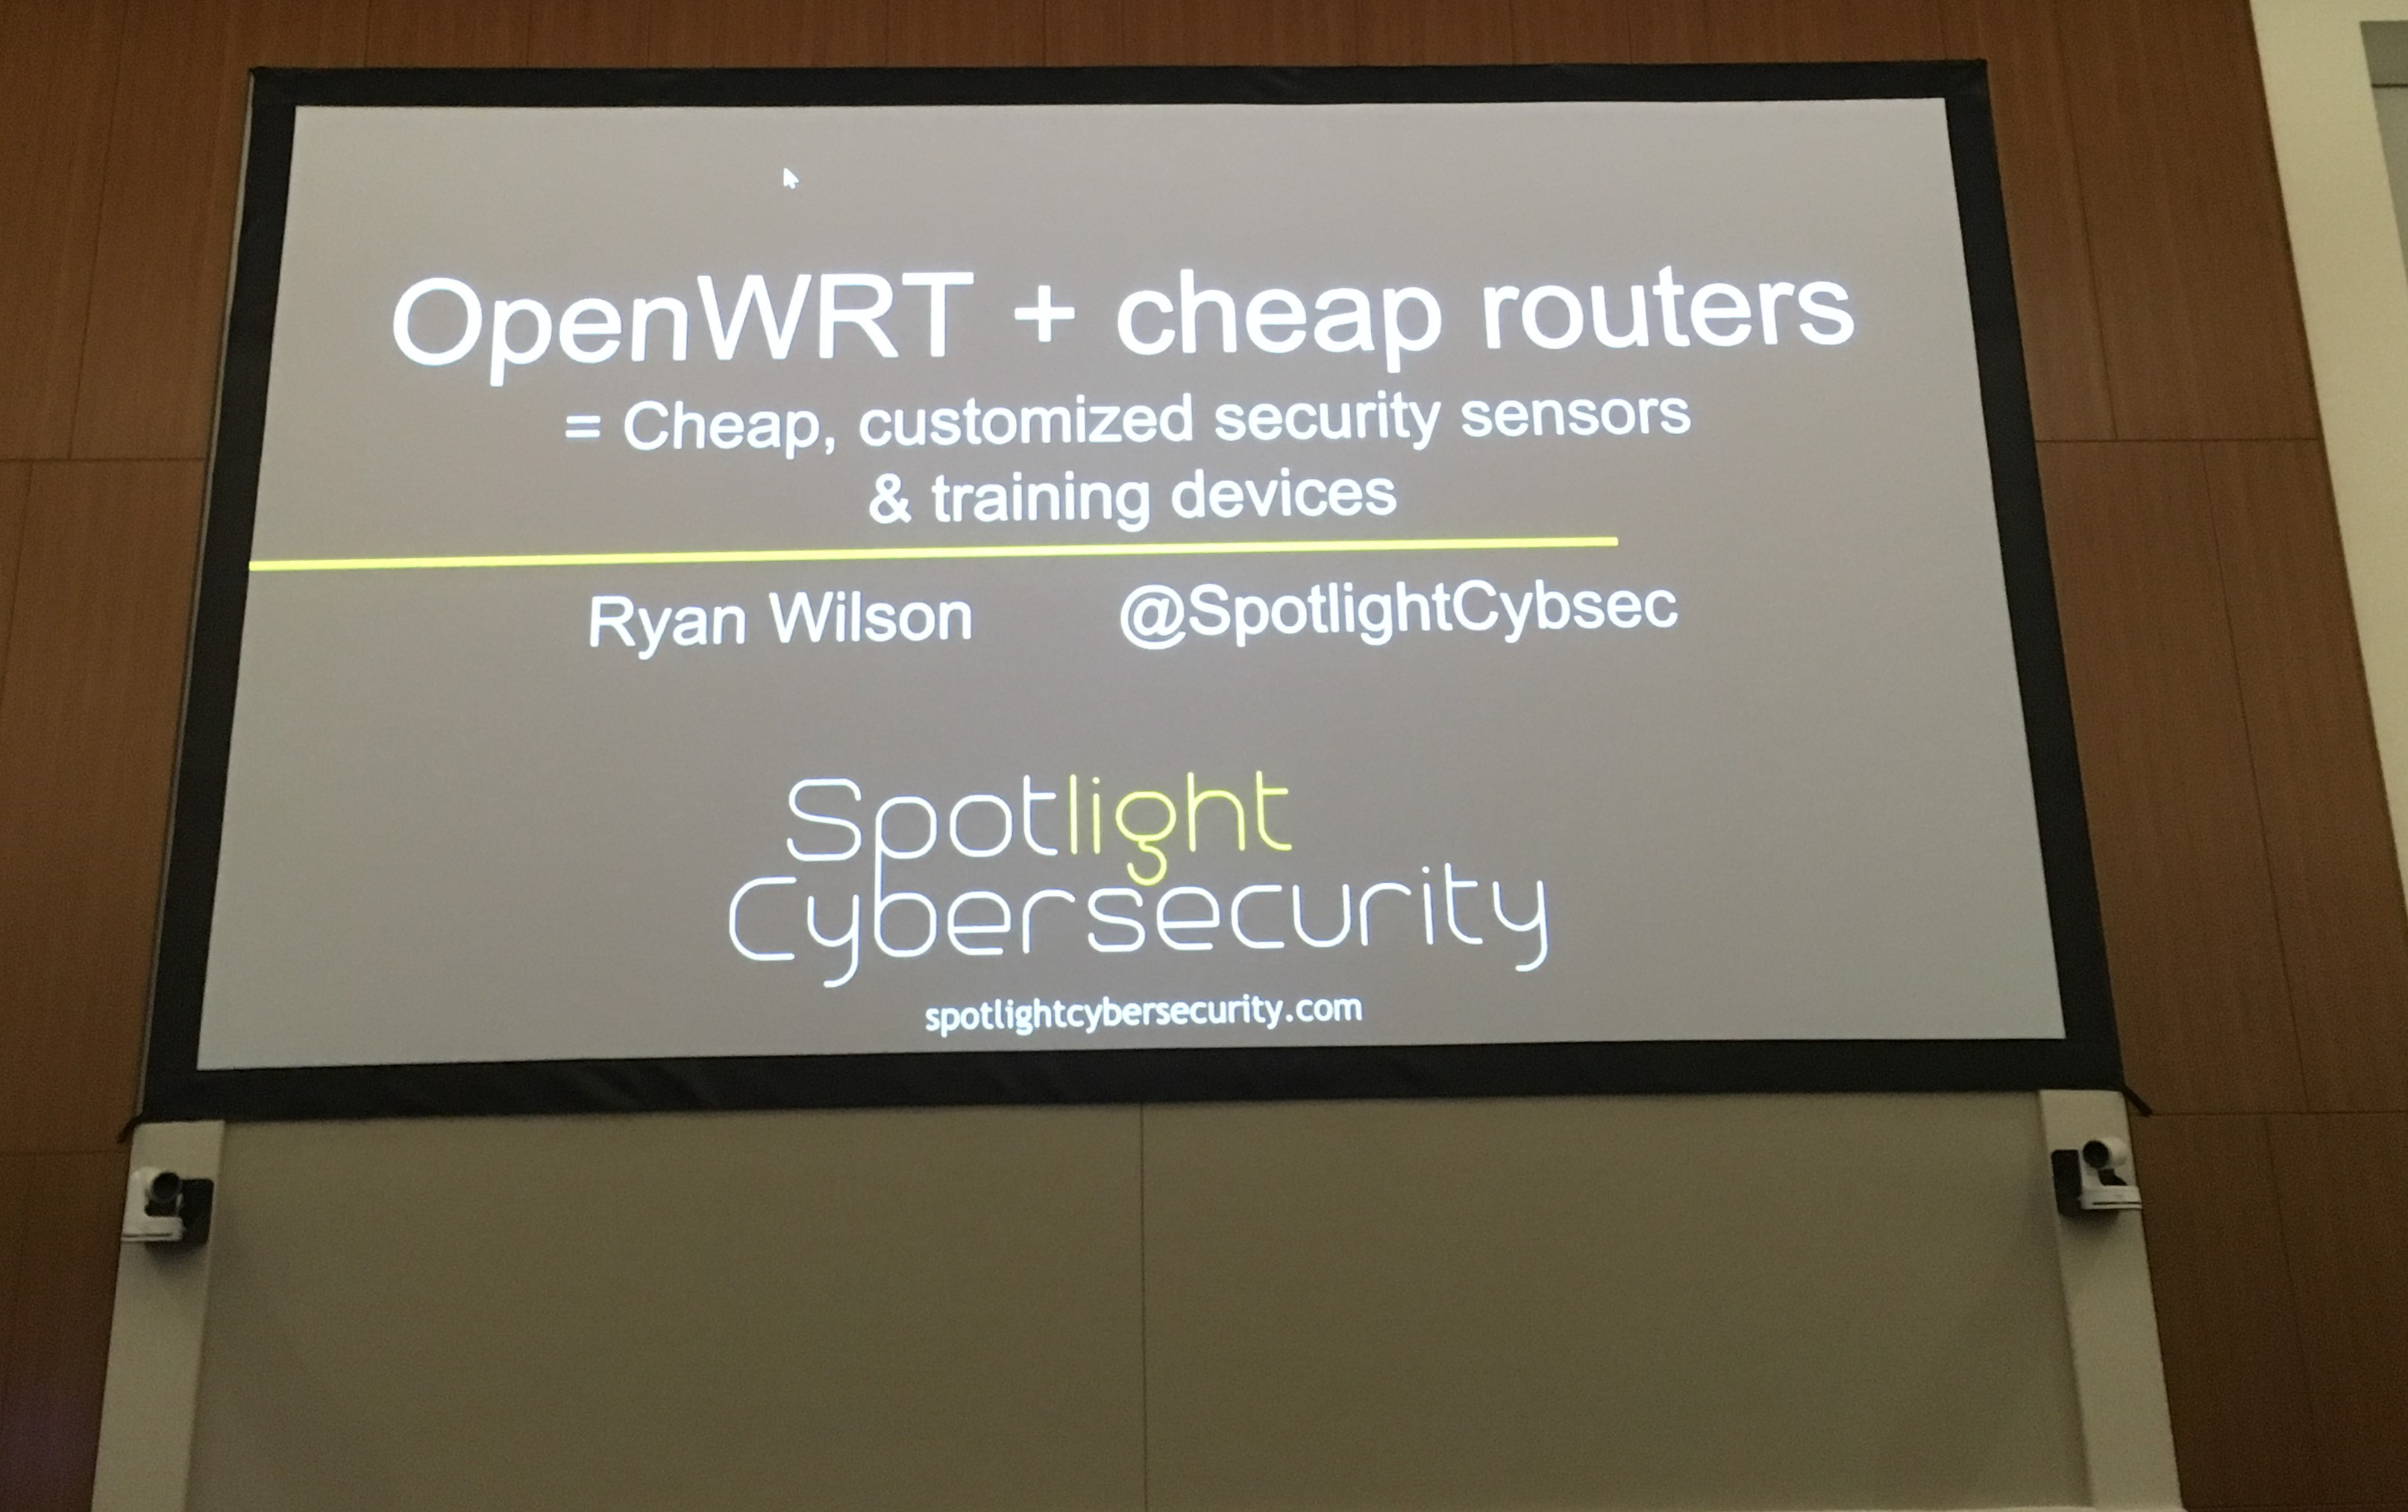 OpenWRT + cheap routers